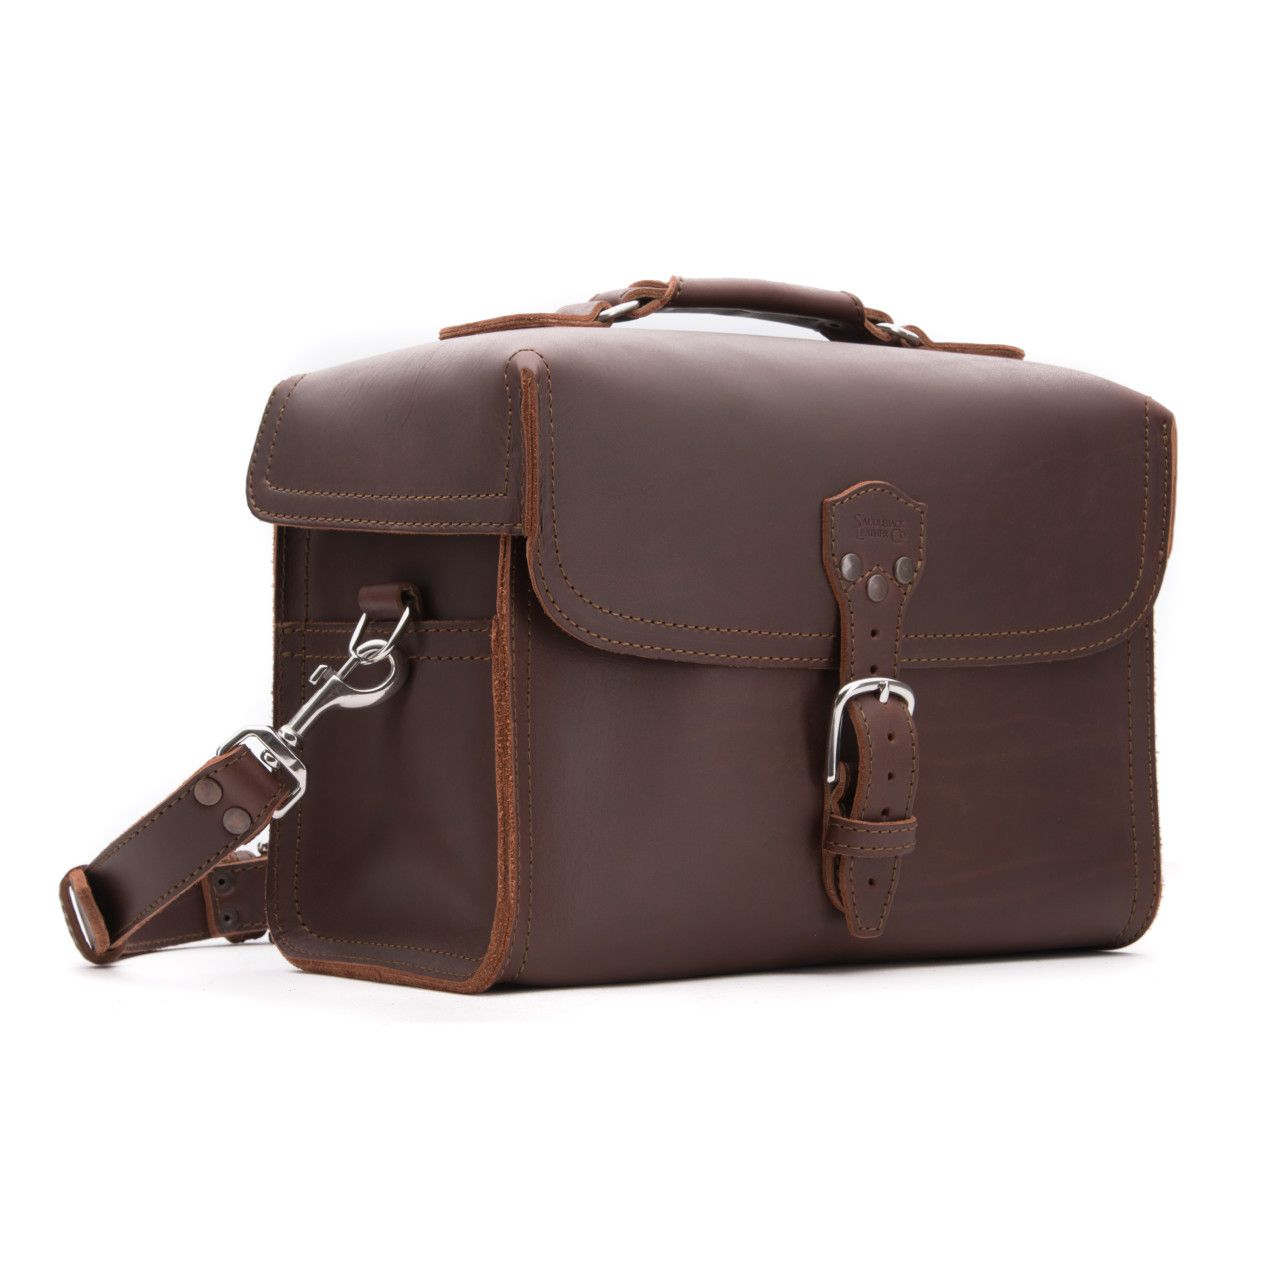 leather gadget bag large in chestnut leather